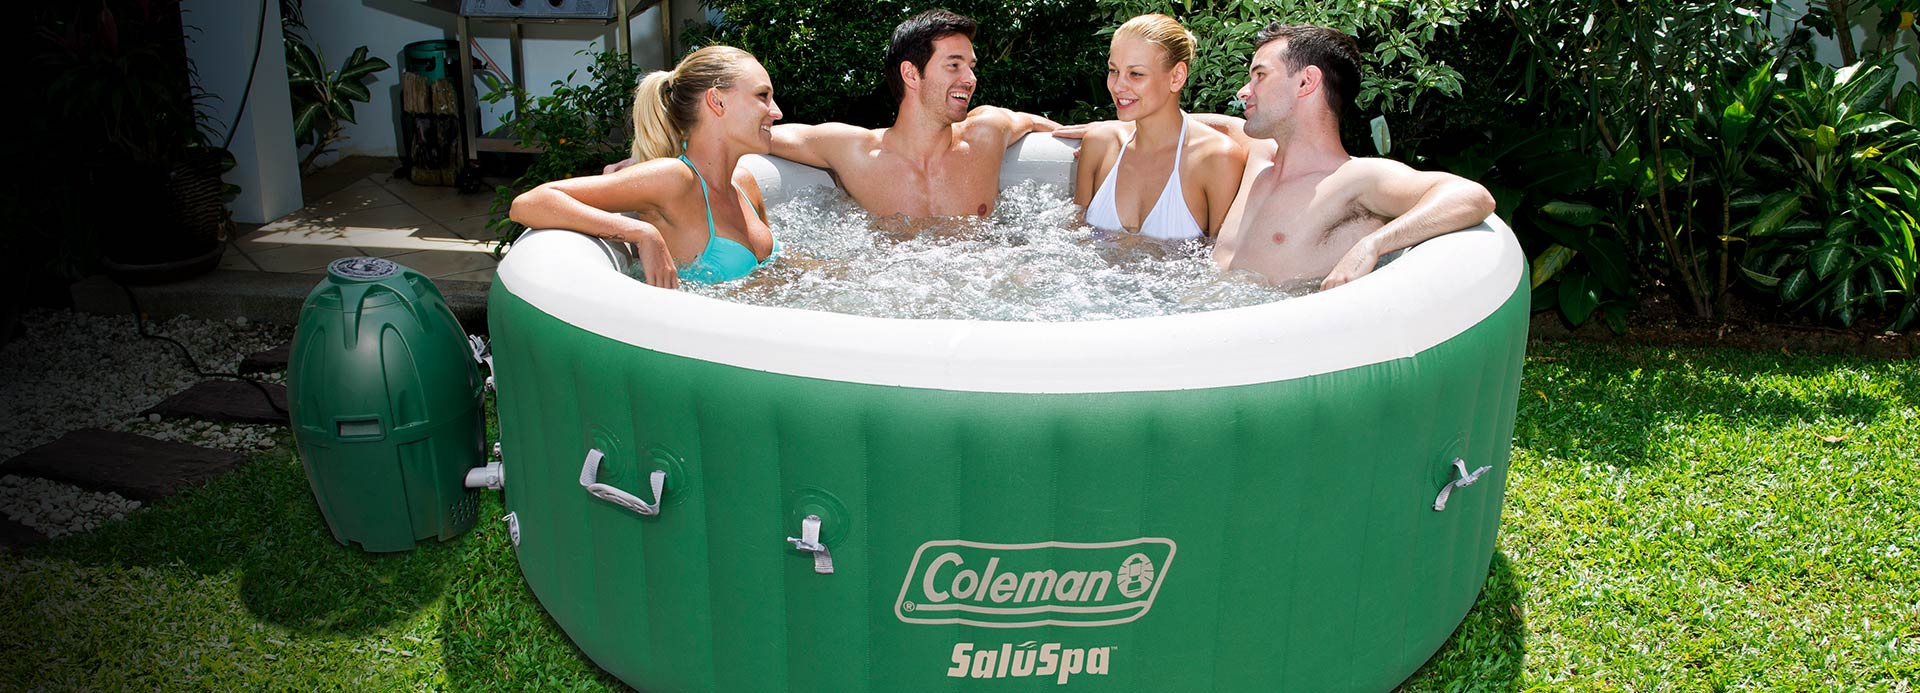 Pools hot tubs pool supplies patio lawn garden for Pool show tv